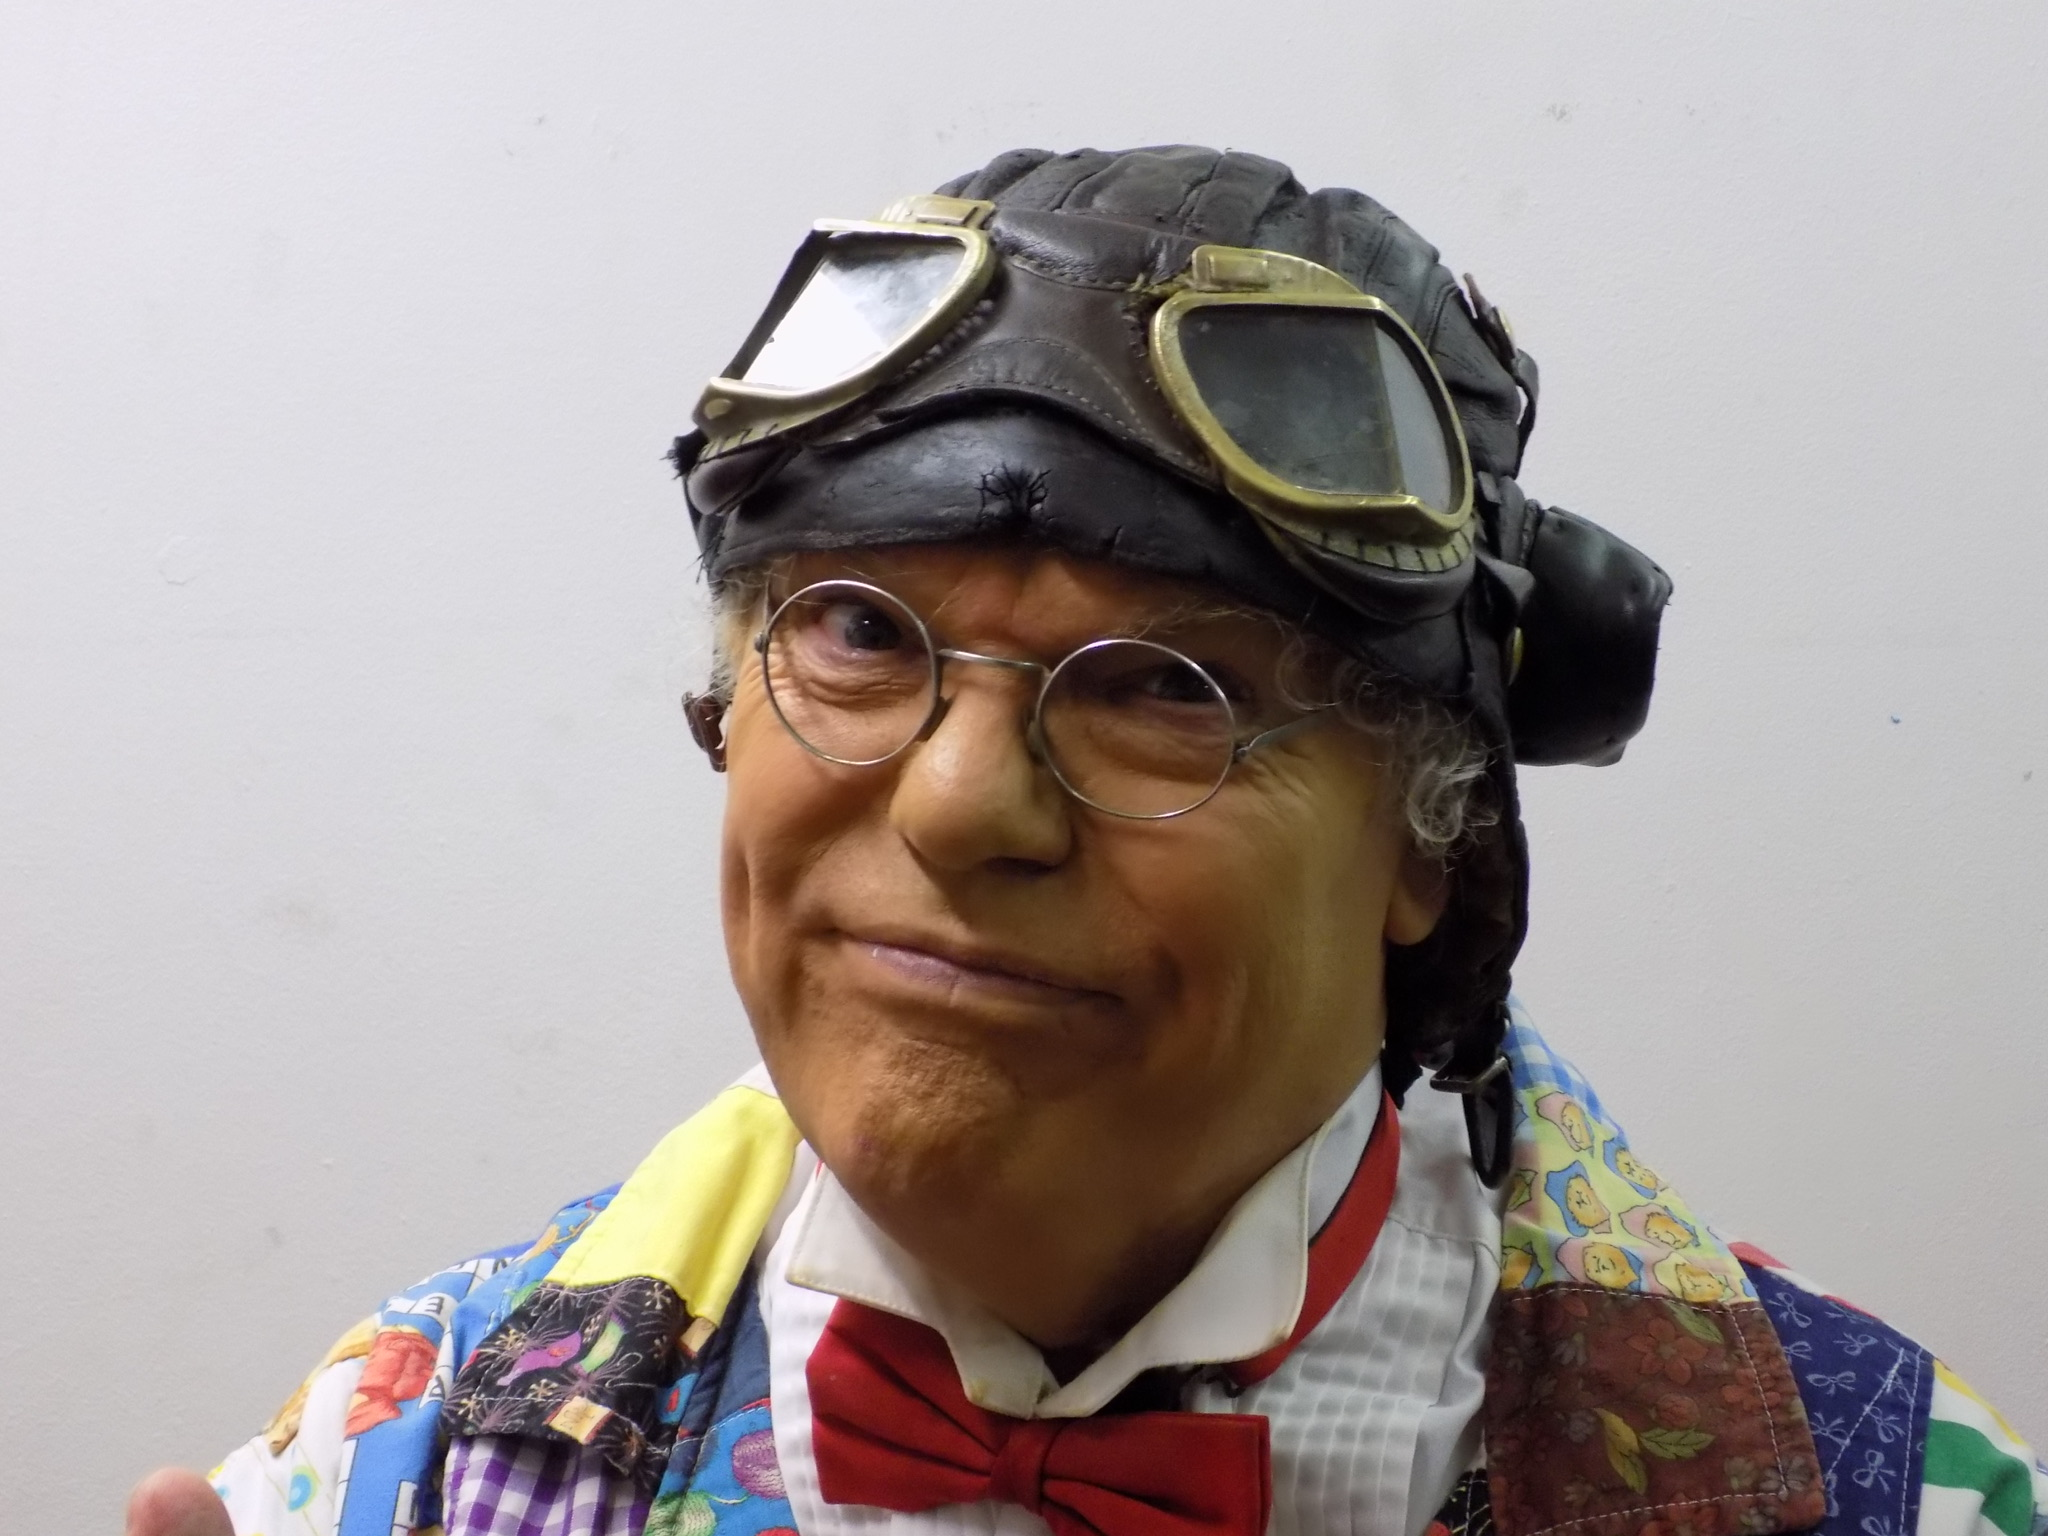 Roy chubby brown walks off opinion